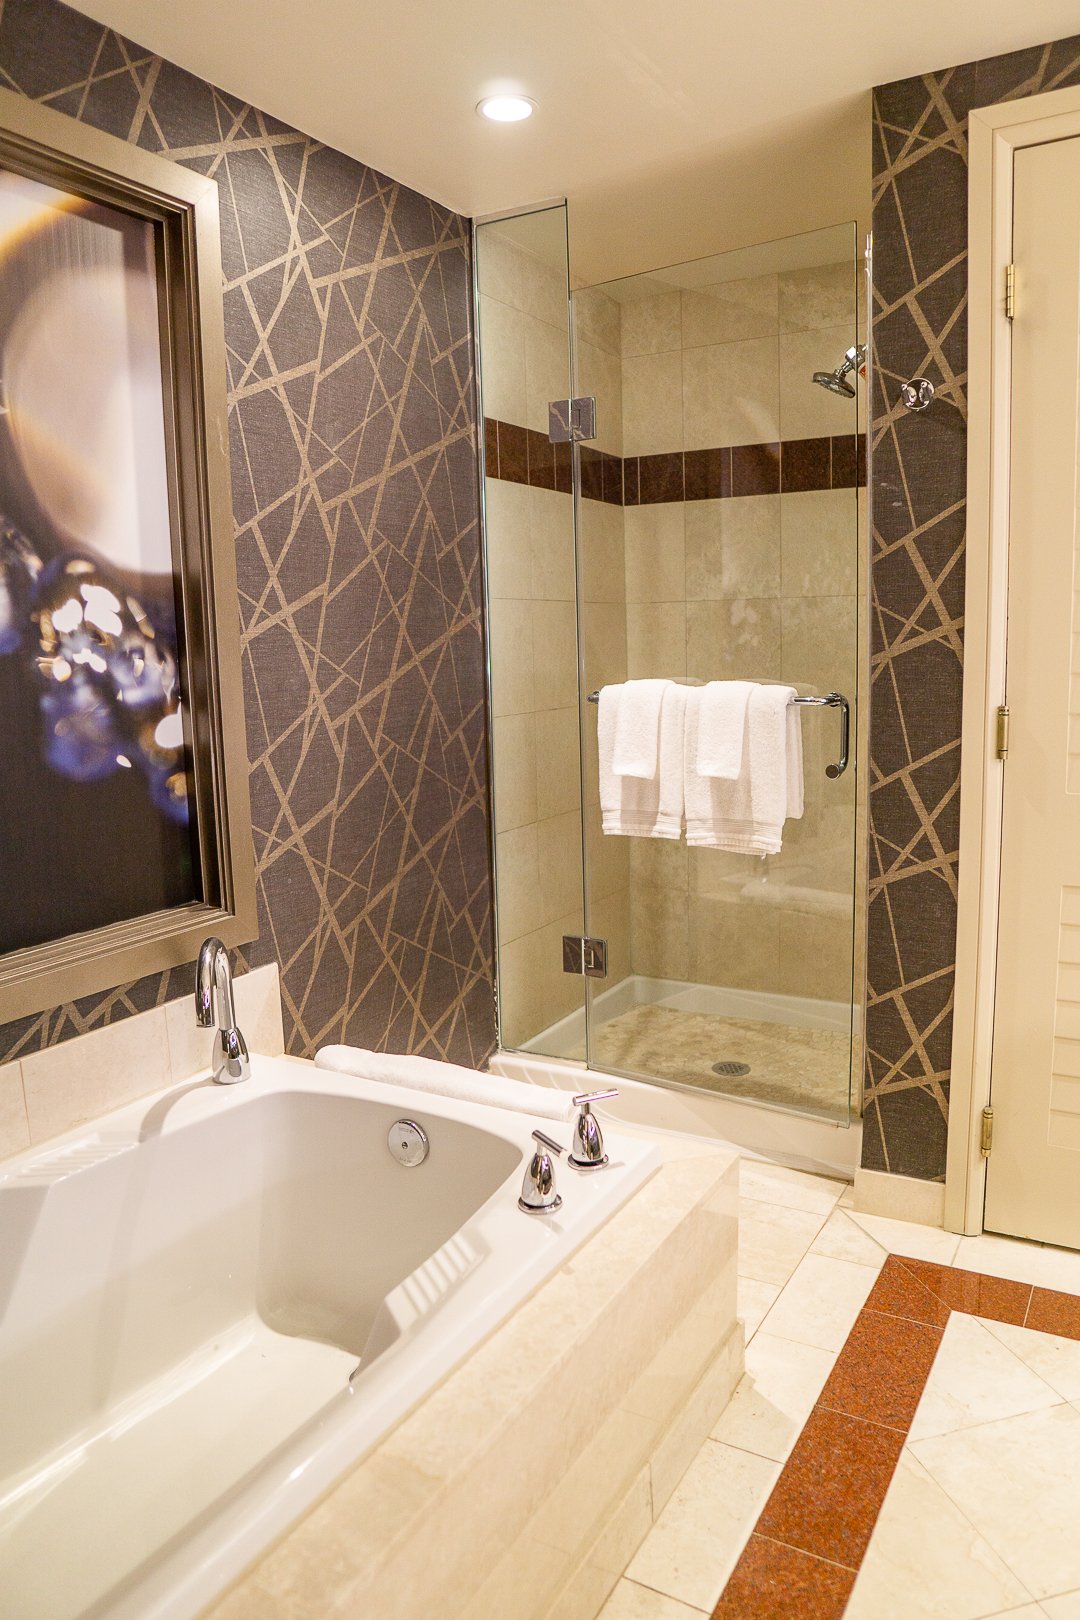 Bathroom at the Stay Well Kind Room at the Mandalay Bay with Chase LHRC